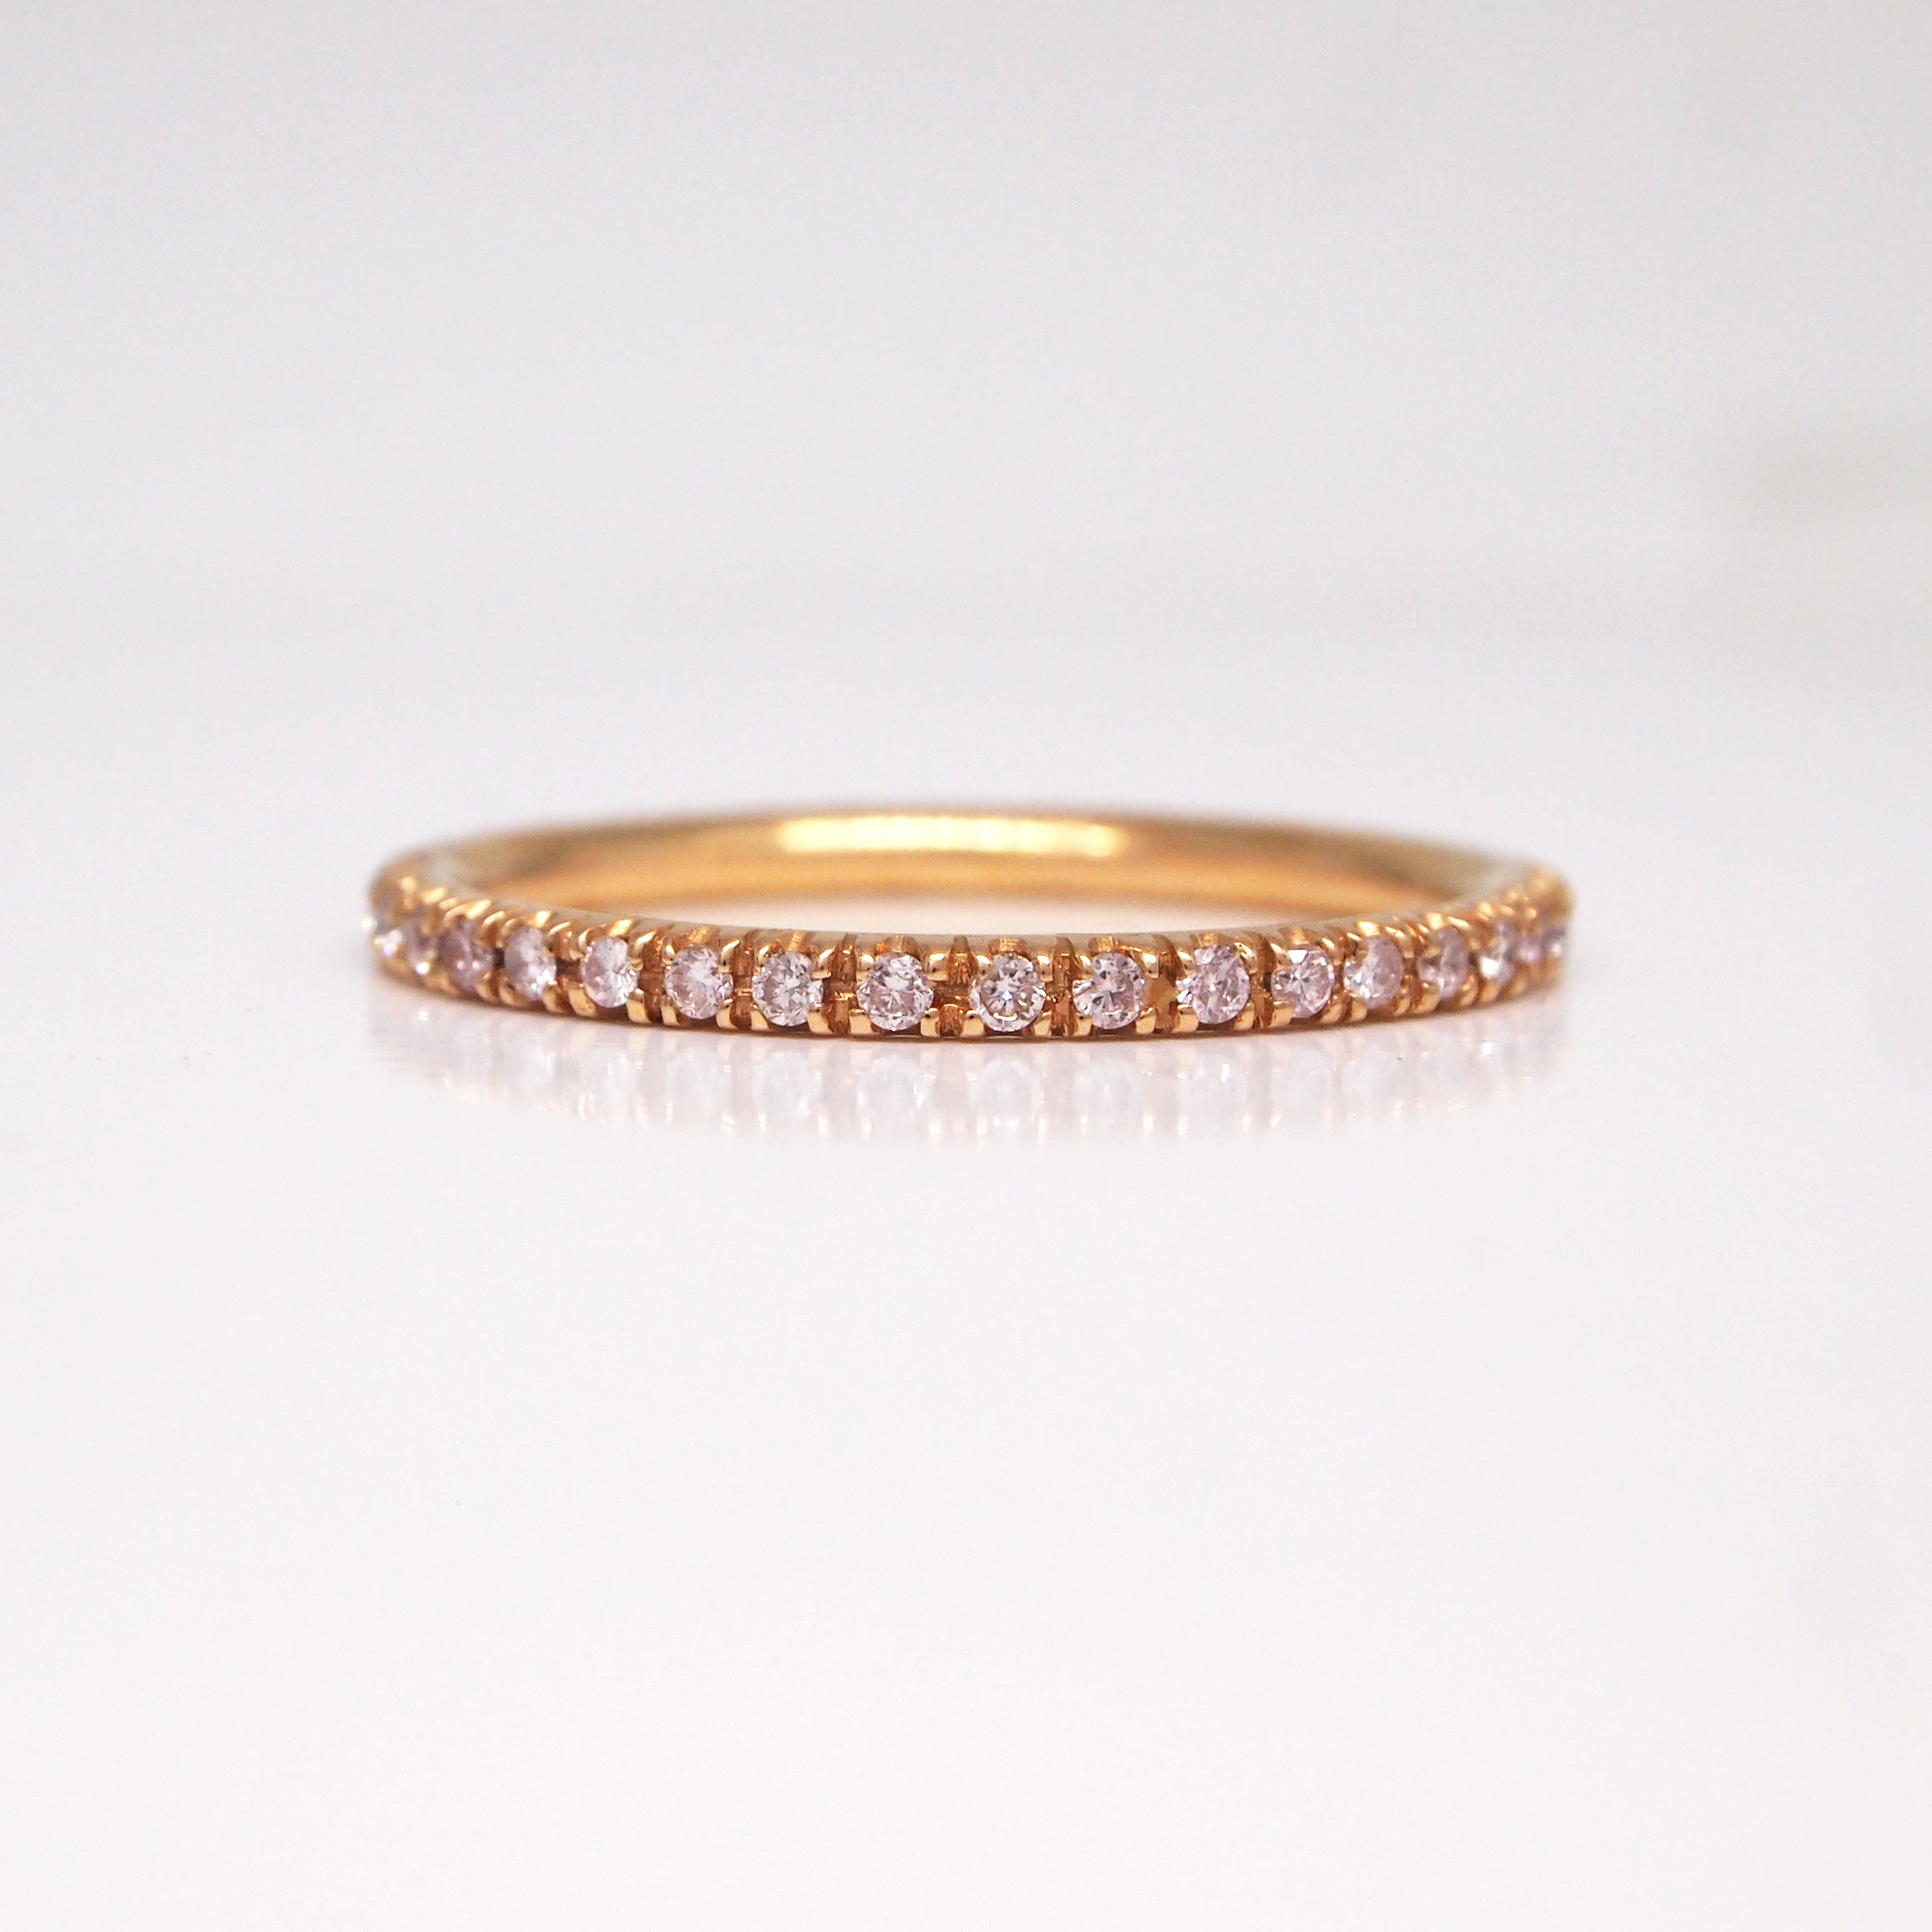 rose band ct with diamonds ring eternity modern engagement argyle rings gold and white wedding pink bands